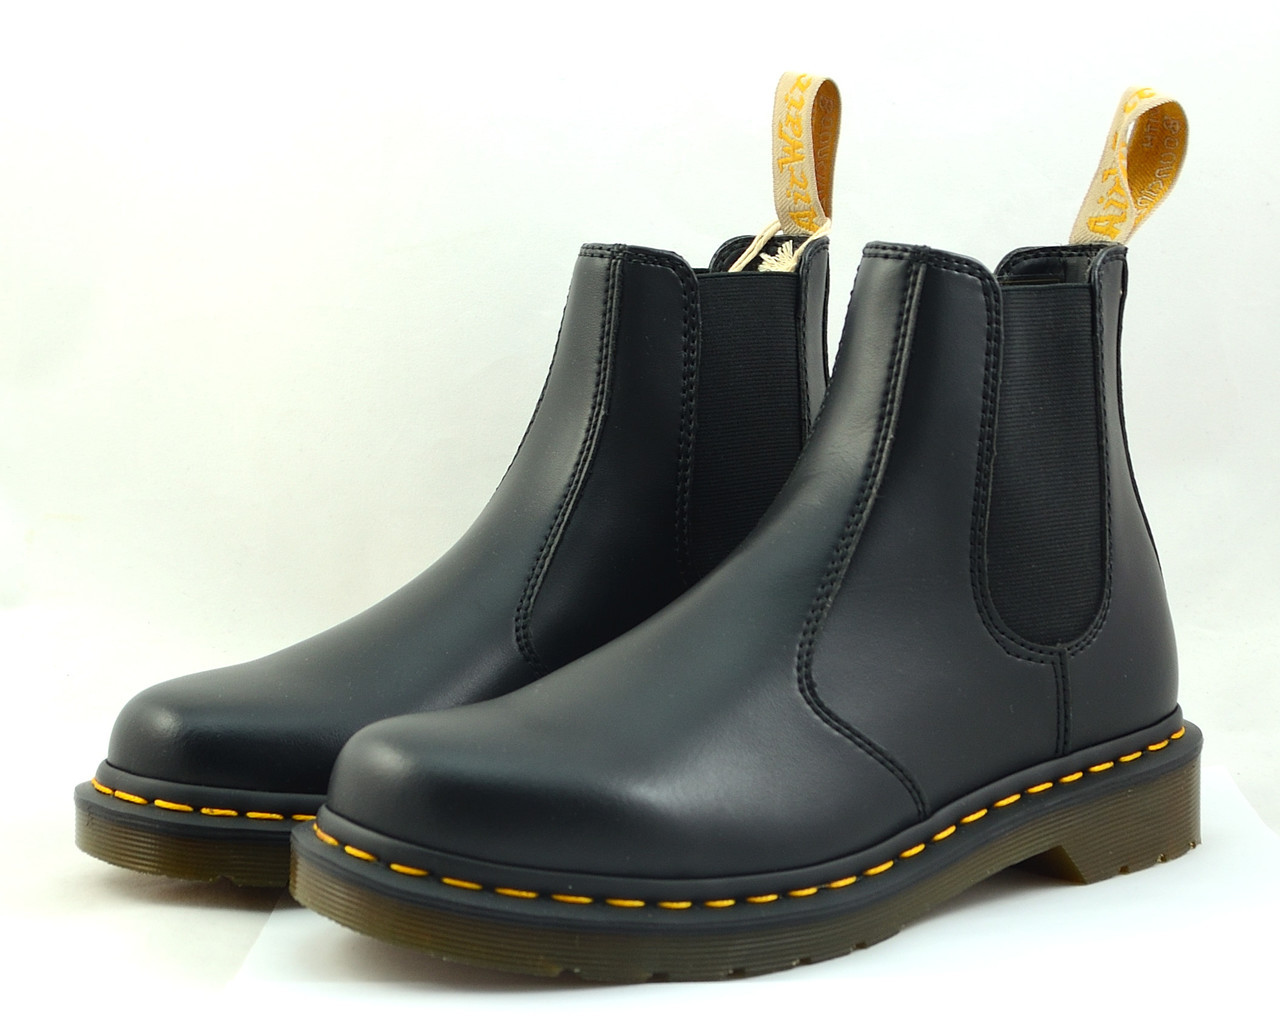 exclusive deals durable service great variety styles Chelsea 2976 black